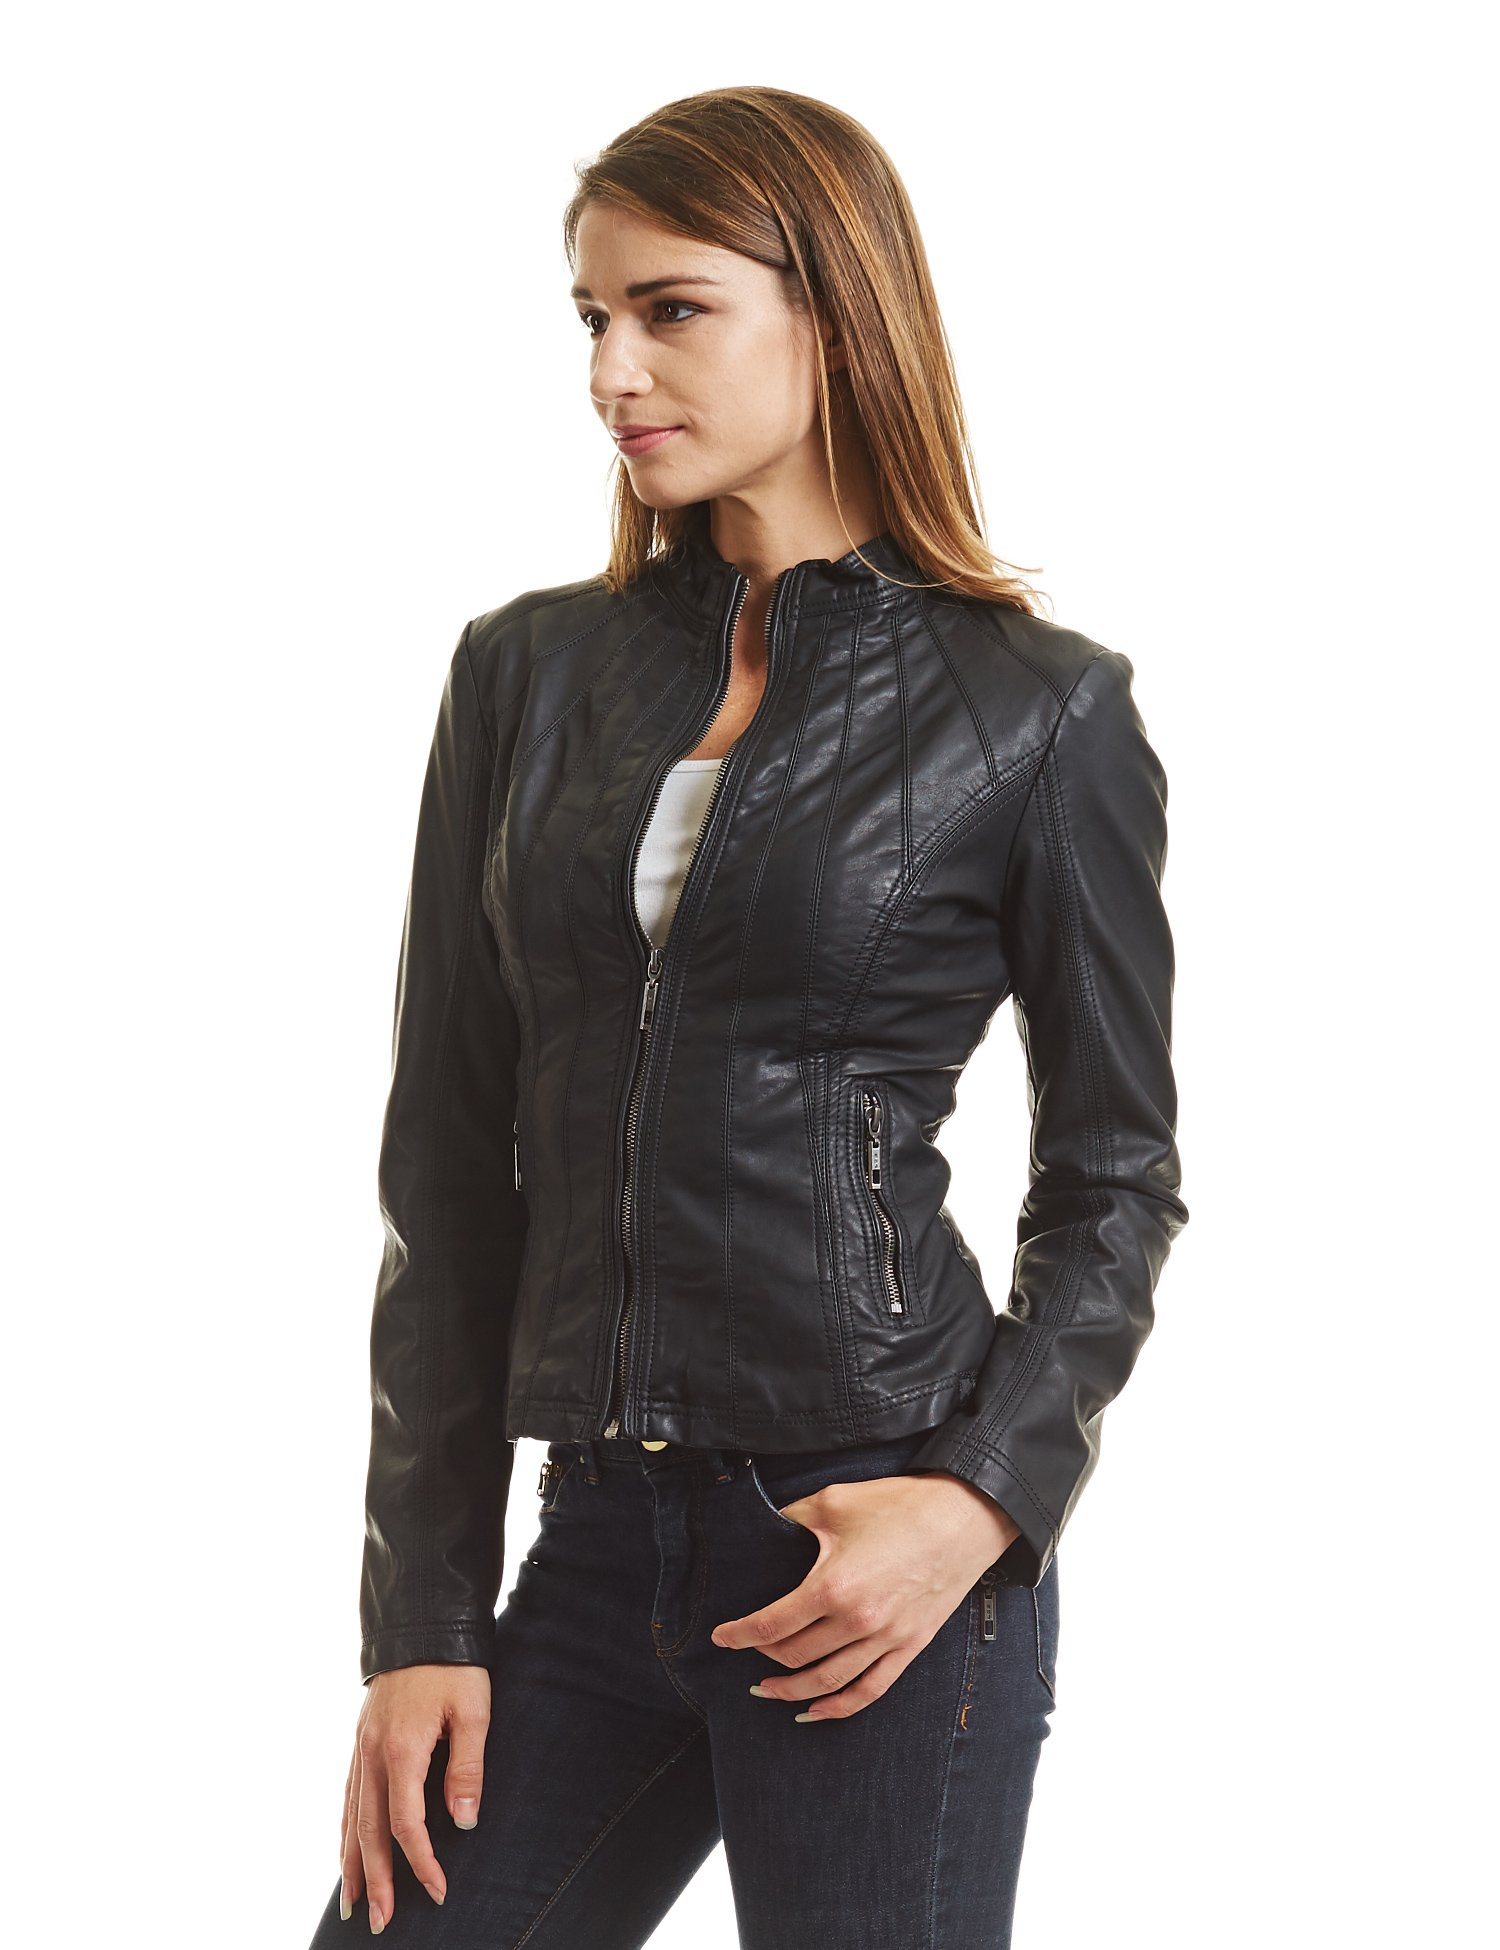 Made By Johnny MBJ WJC877 Womens Panelled Faux Leather Moto Jacket S Black by Made By Johnny (Image #5)